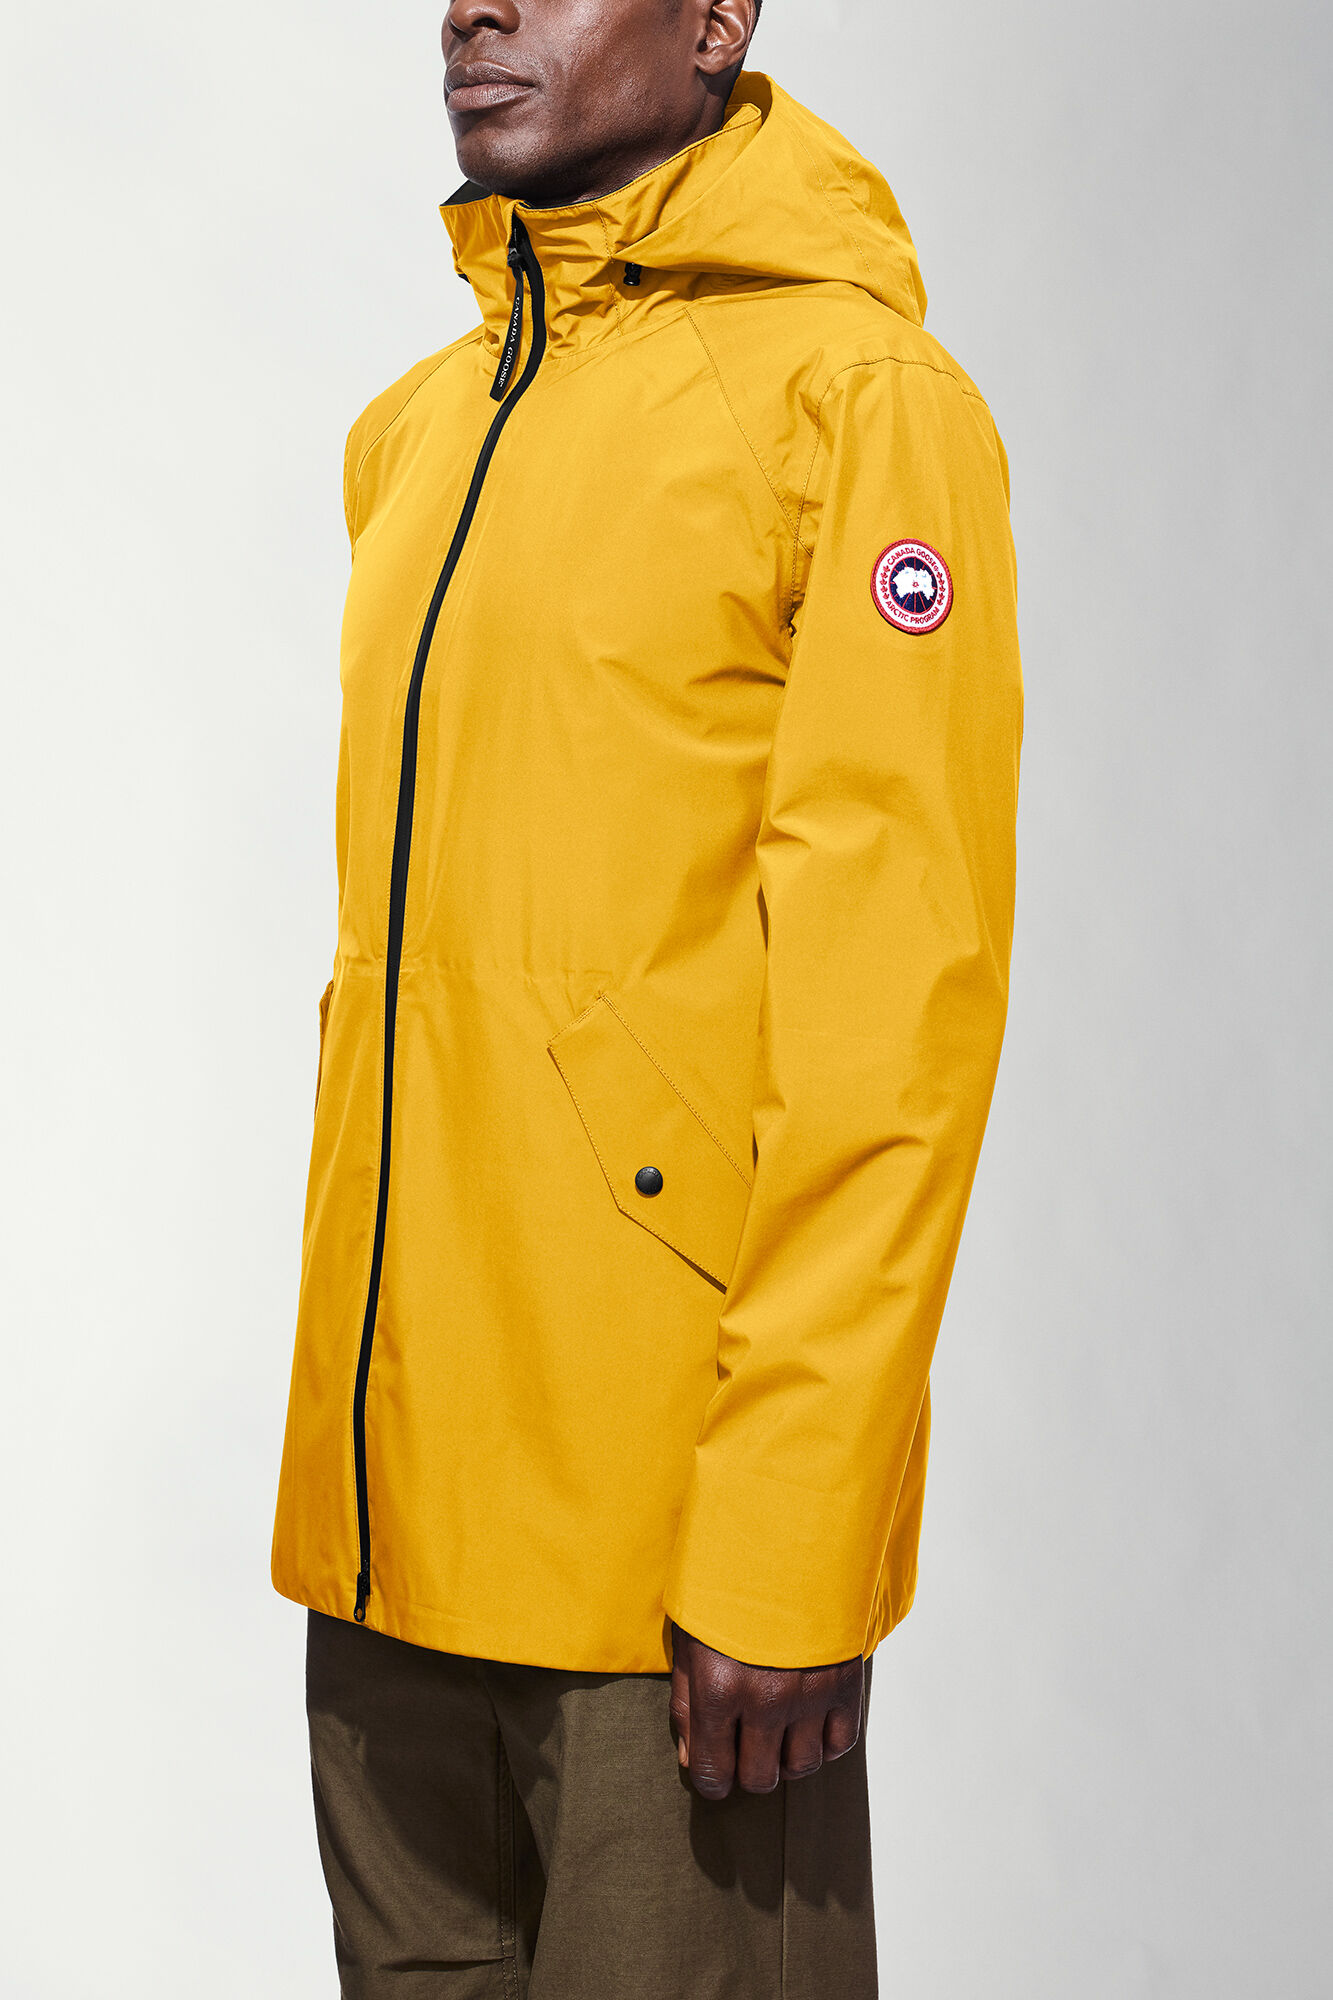 fast delivery reputation first enjoy discount price Riverhead Jacket